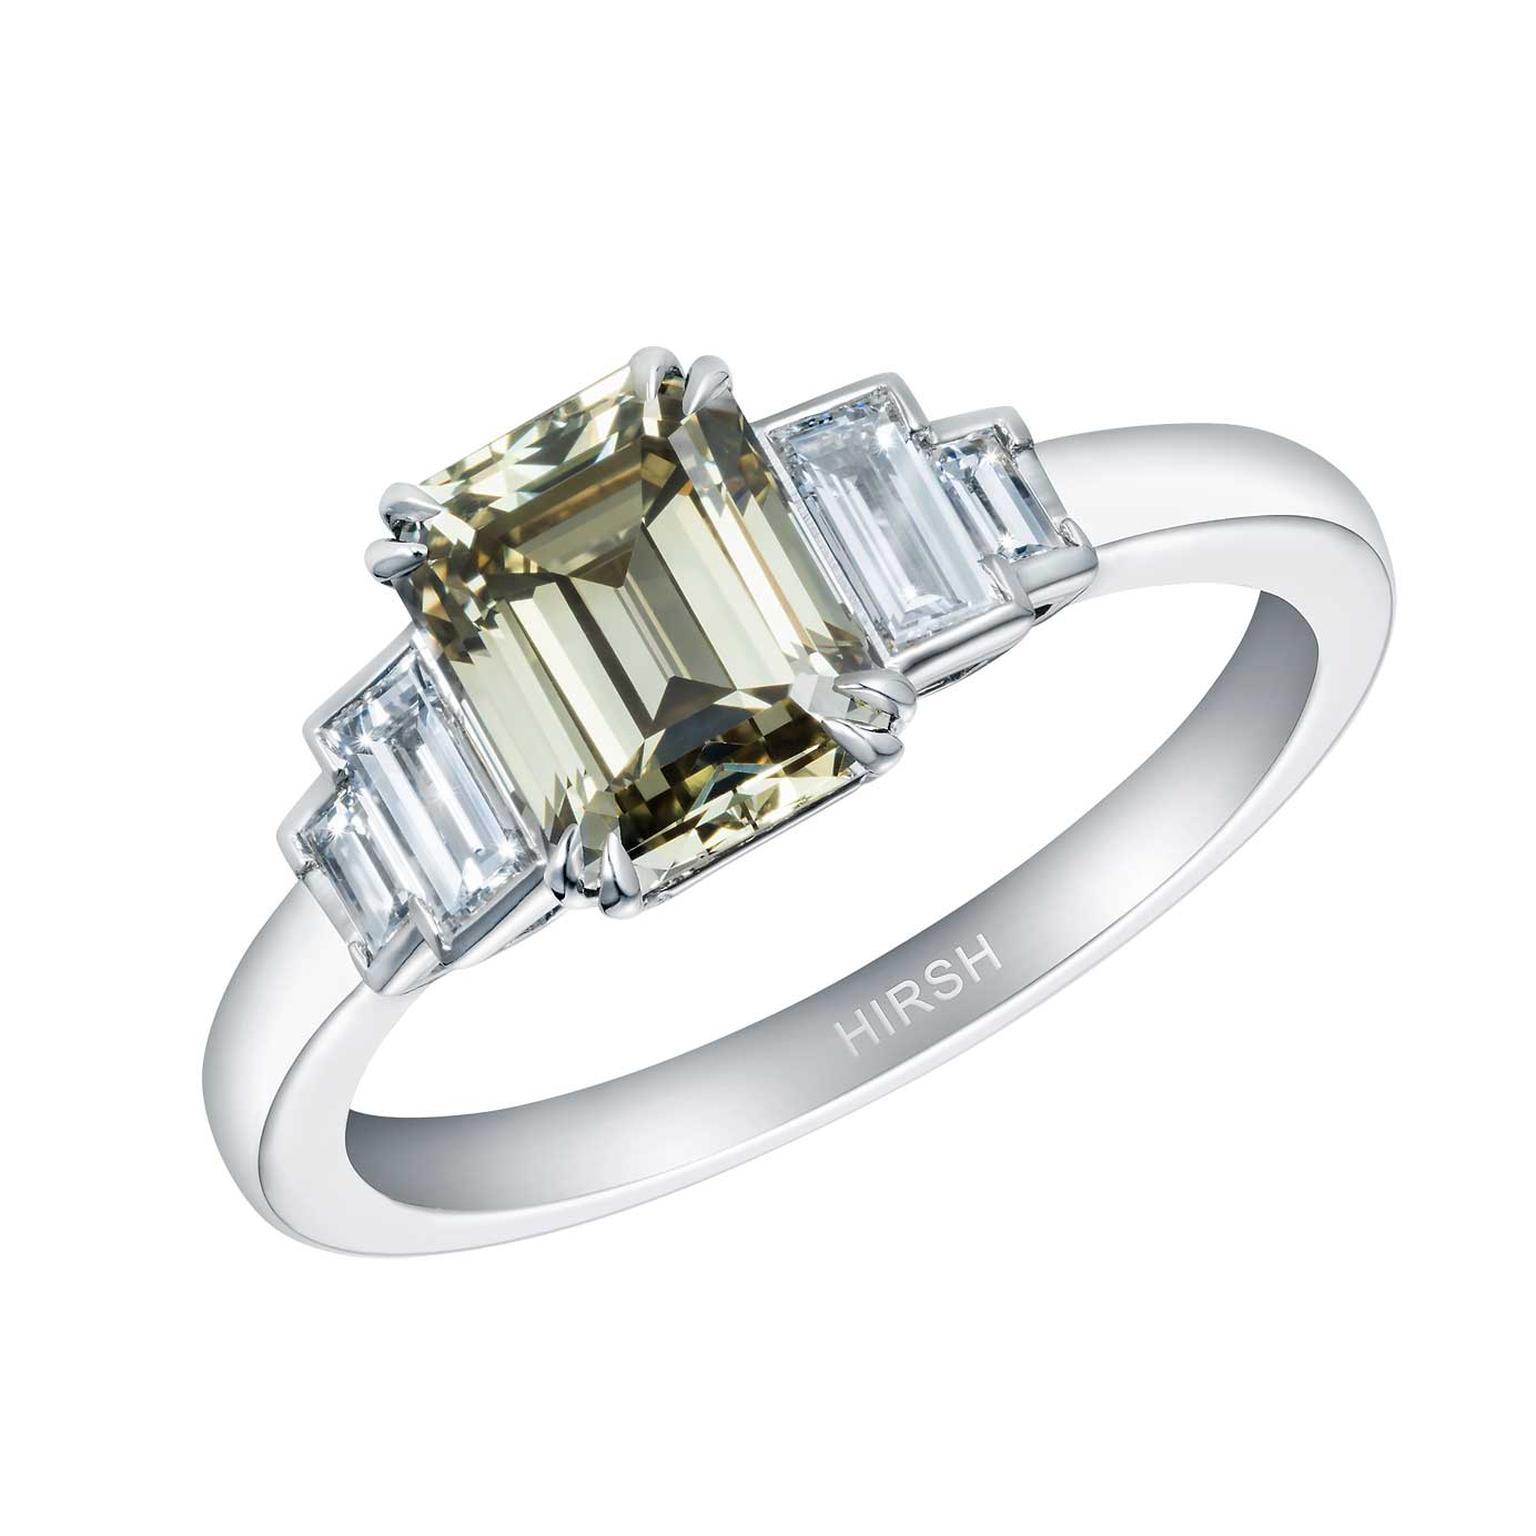 Artemis olive green diamond ring by Hirsh London